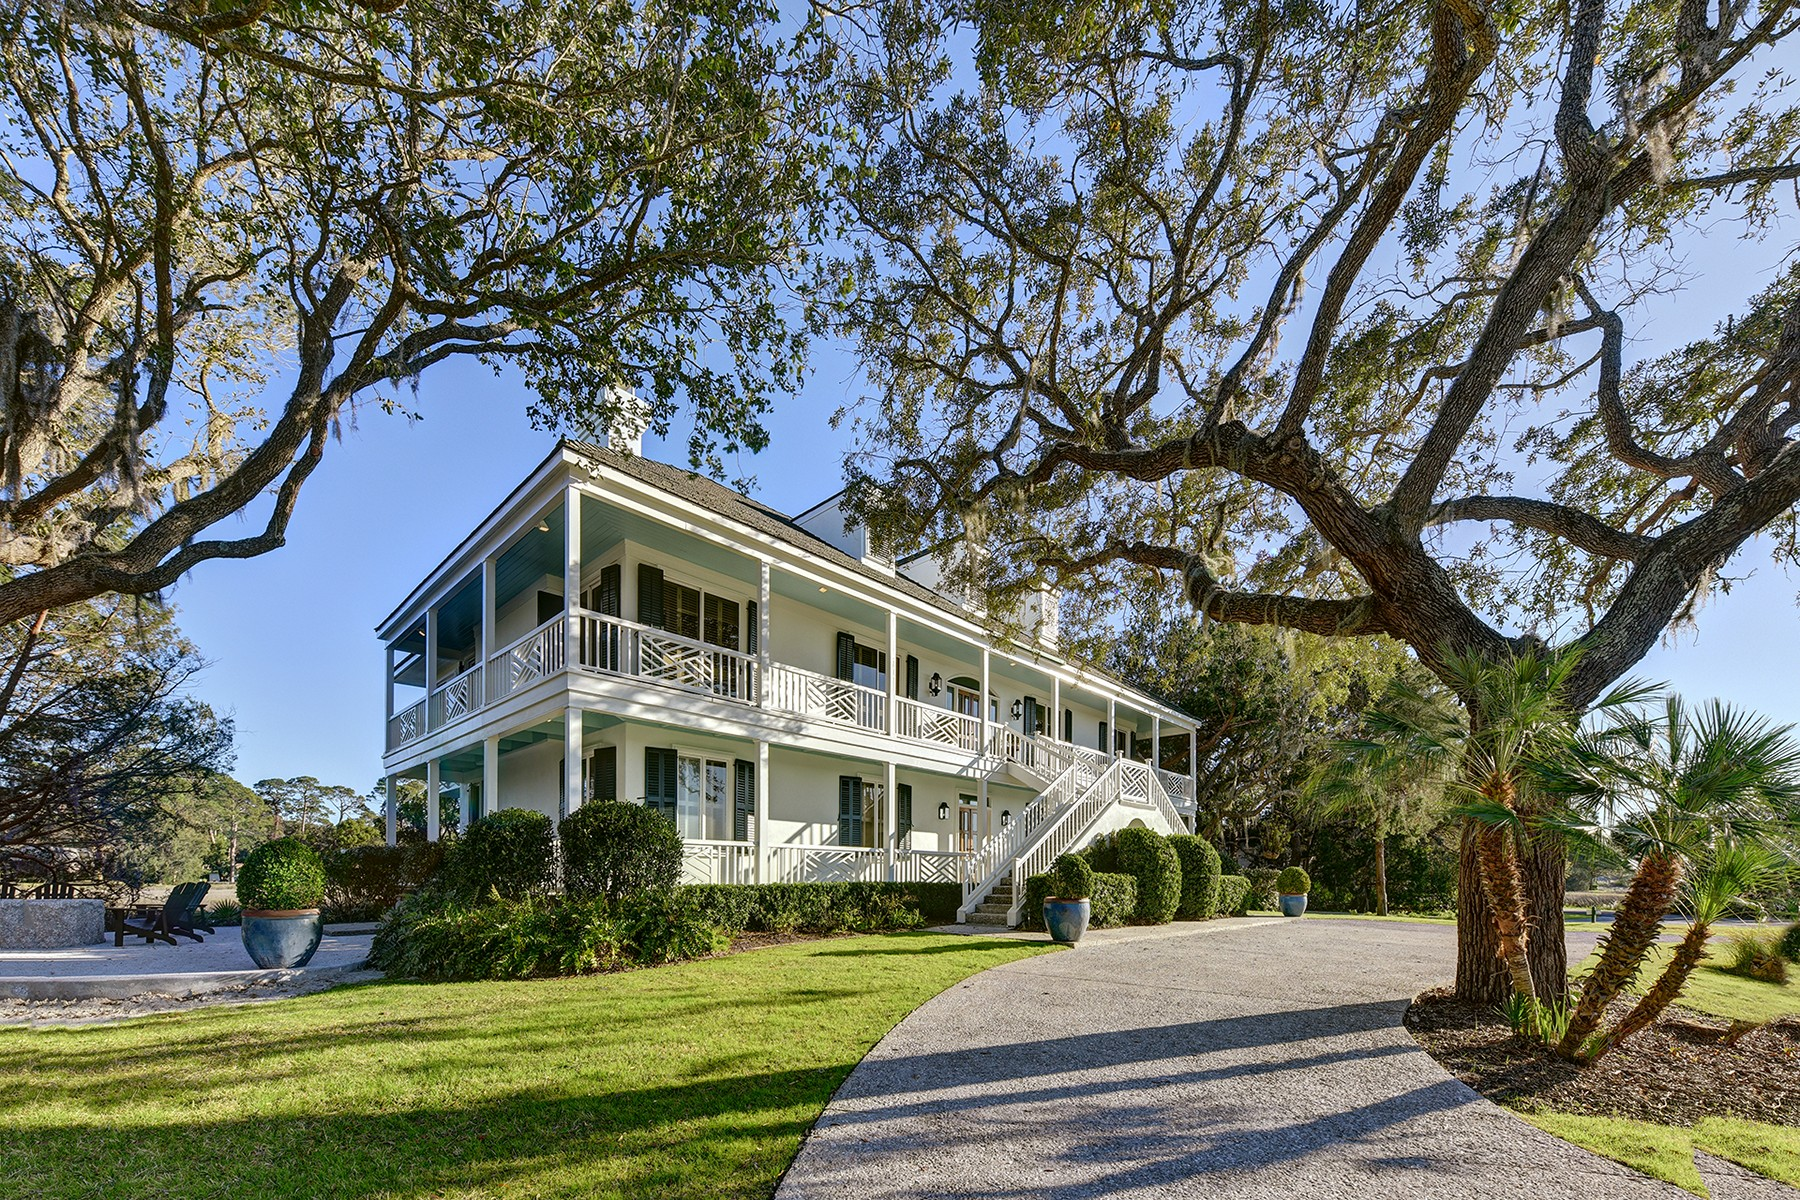 Single Family Home for Active at Cottage 395 382 West Thirteenth Street Cottage 395 Sea Island, Georgia 31522 United States